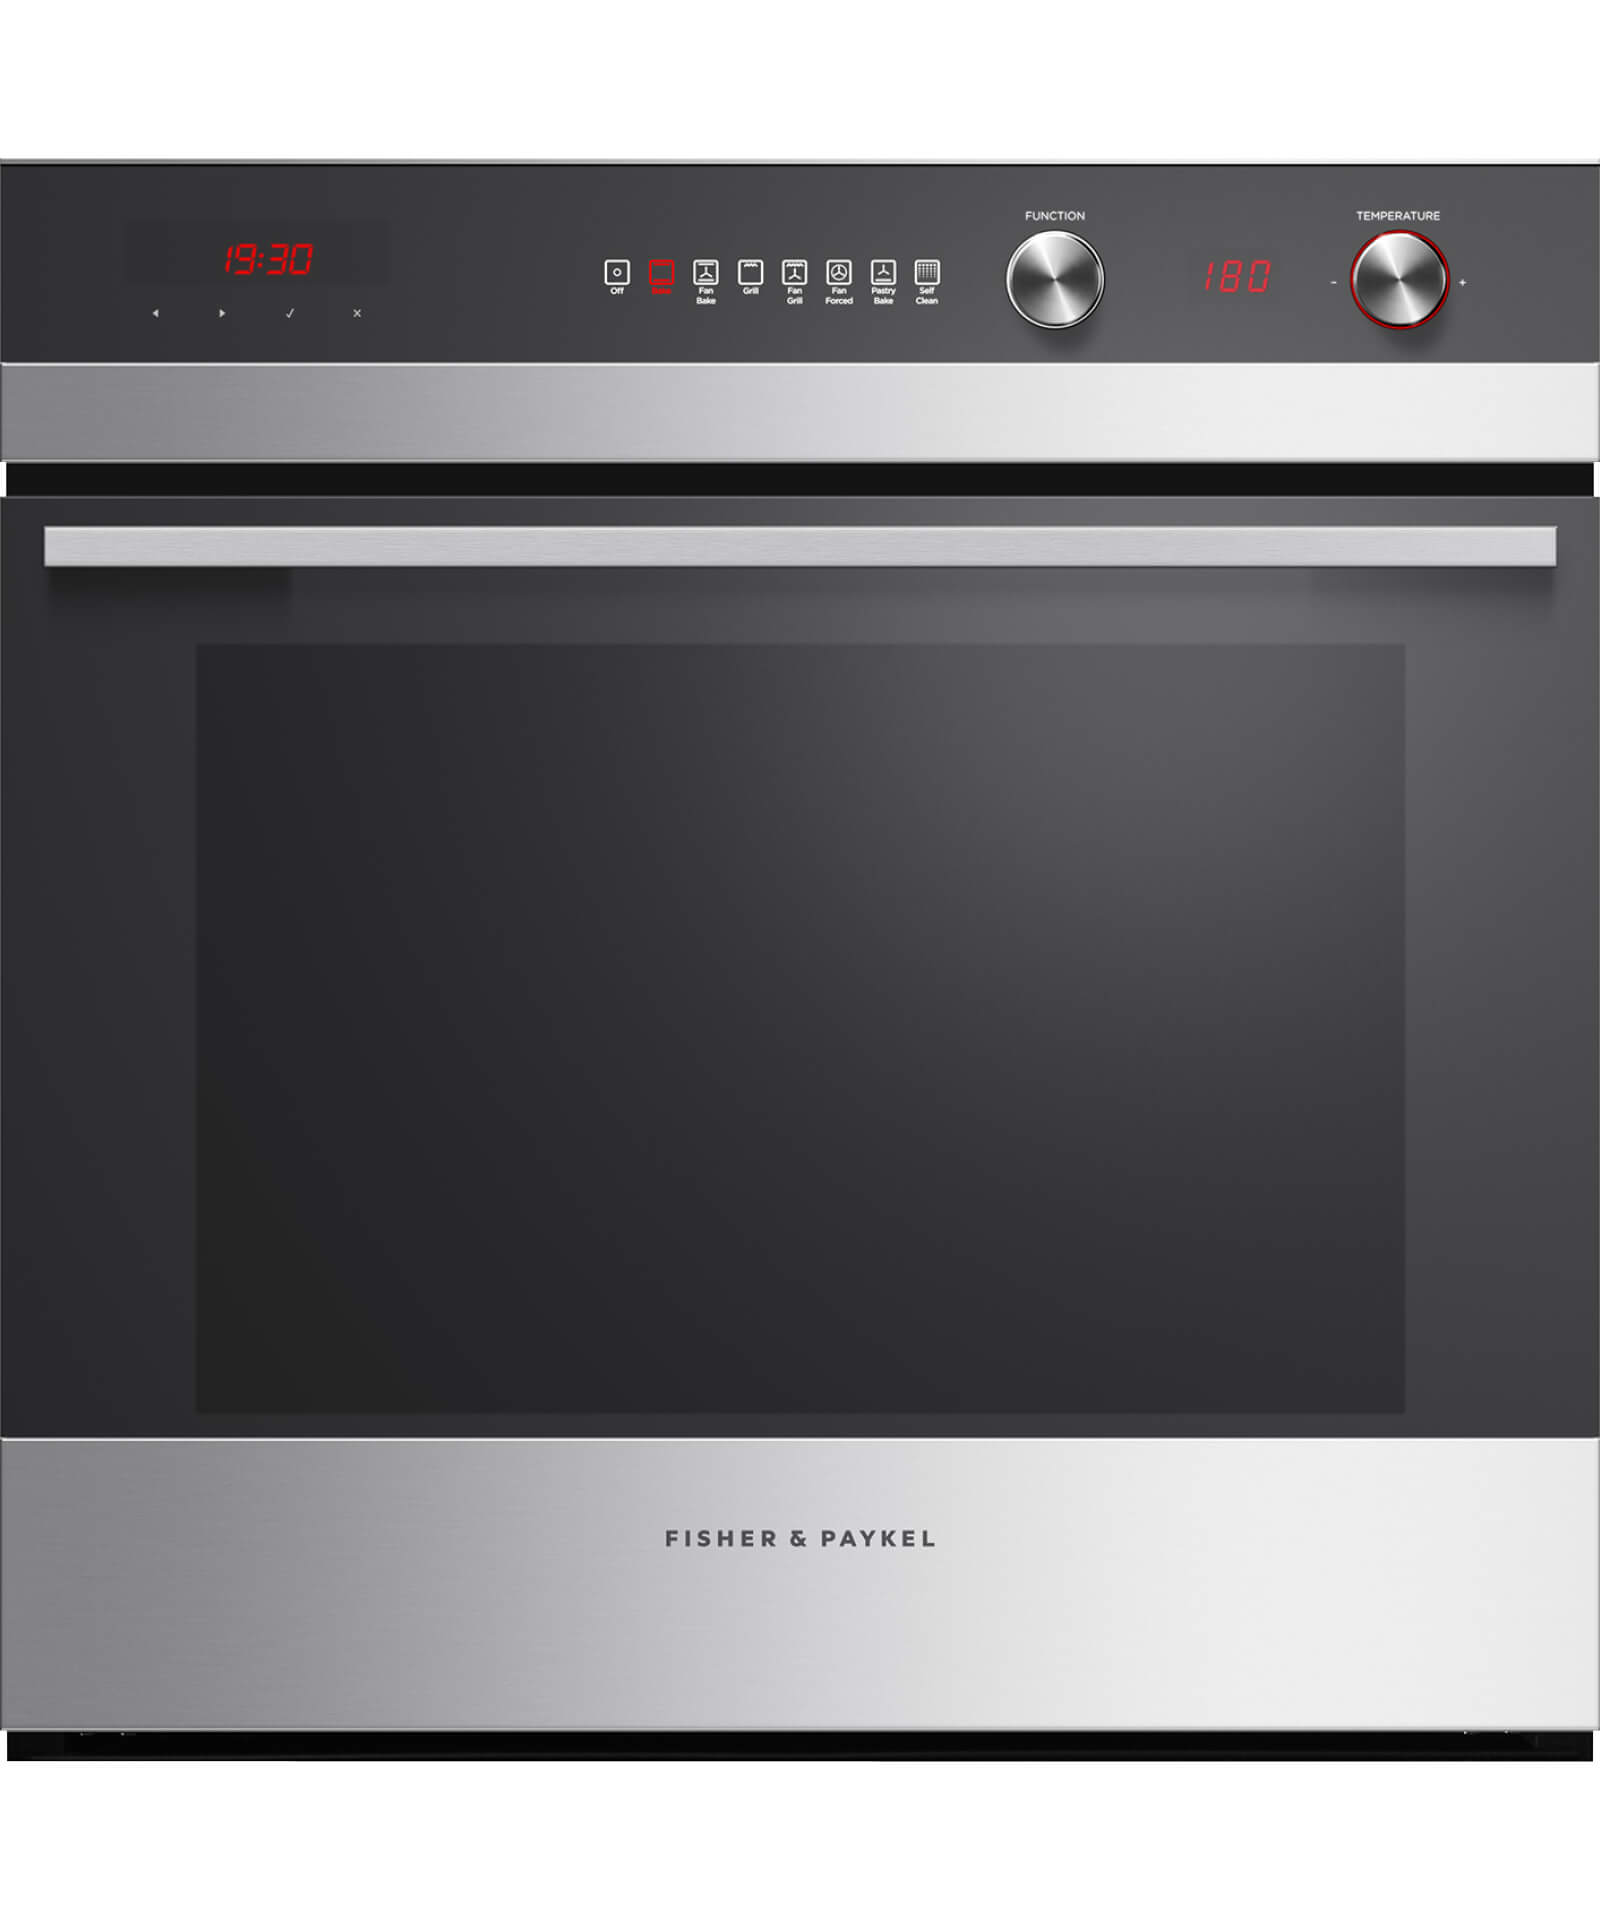 OB60SC7CEPX1 - 60cm 7 Function Pyrolytic Built-in Oven - 81532